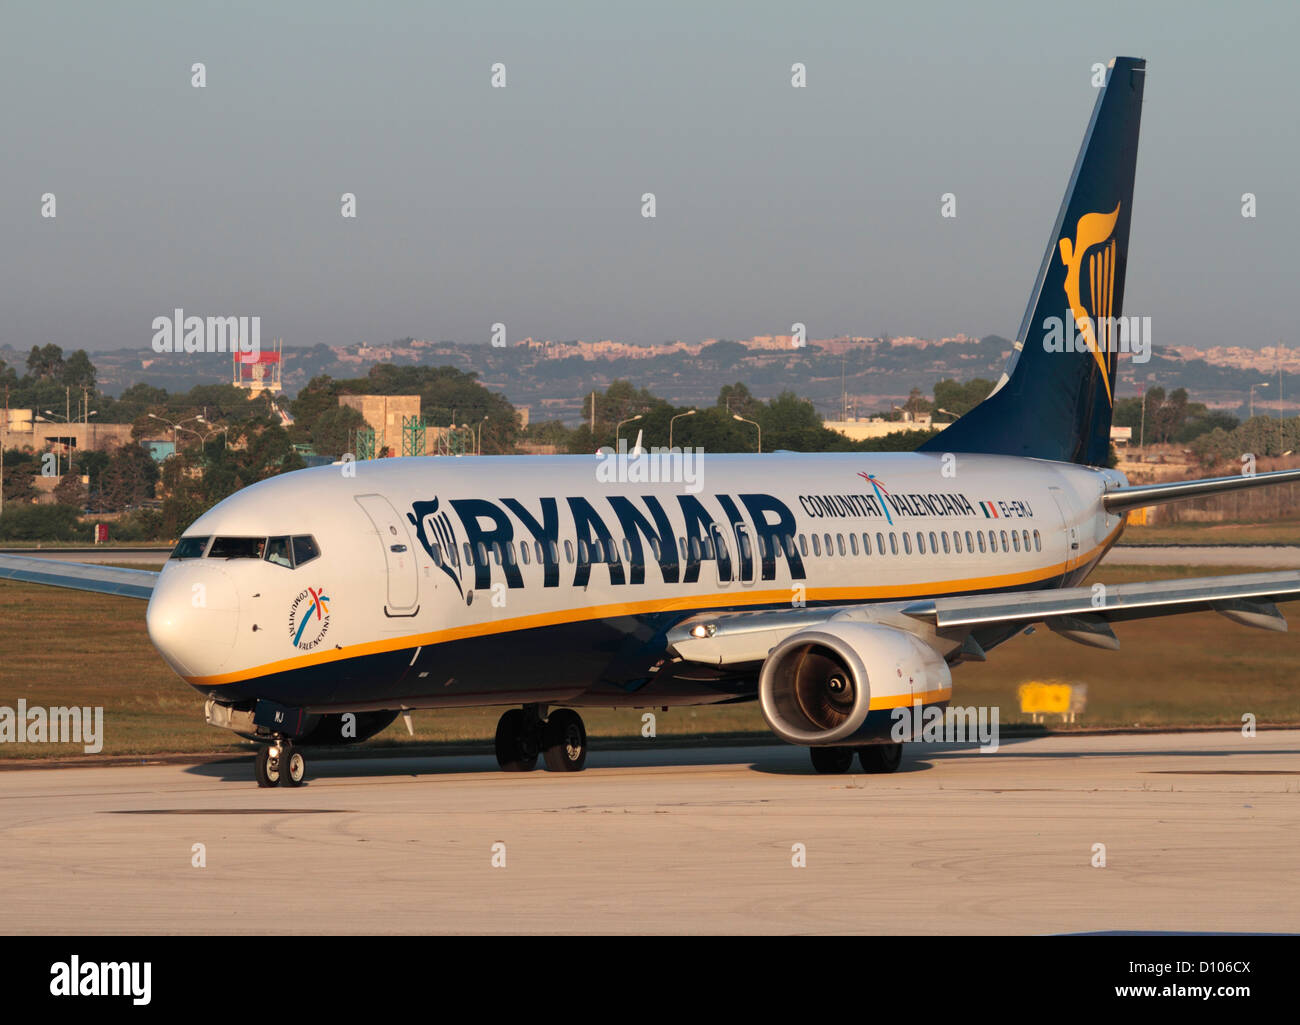 Low cost air travel. Boeing 737-800 passenger jet plane belonging to budget airline Ryanair taxiing for departure - Stock Image